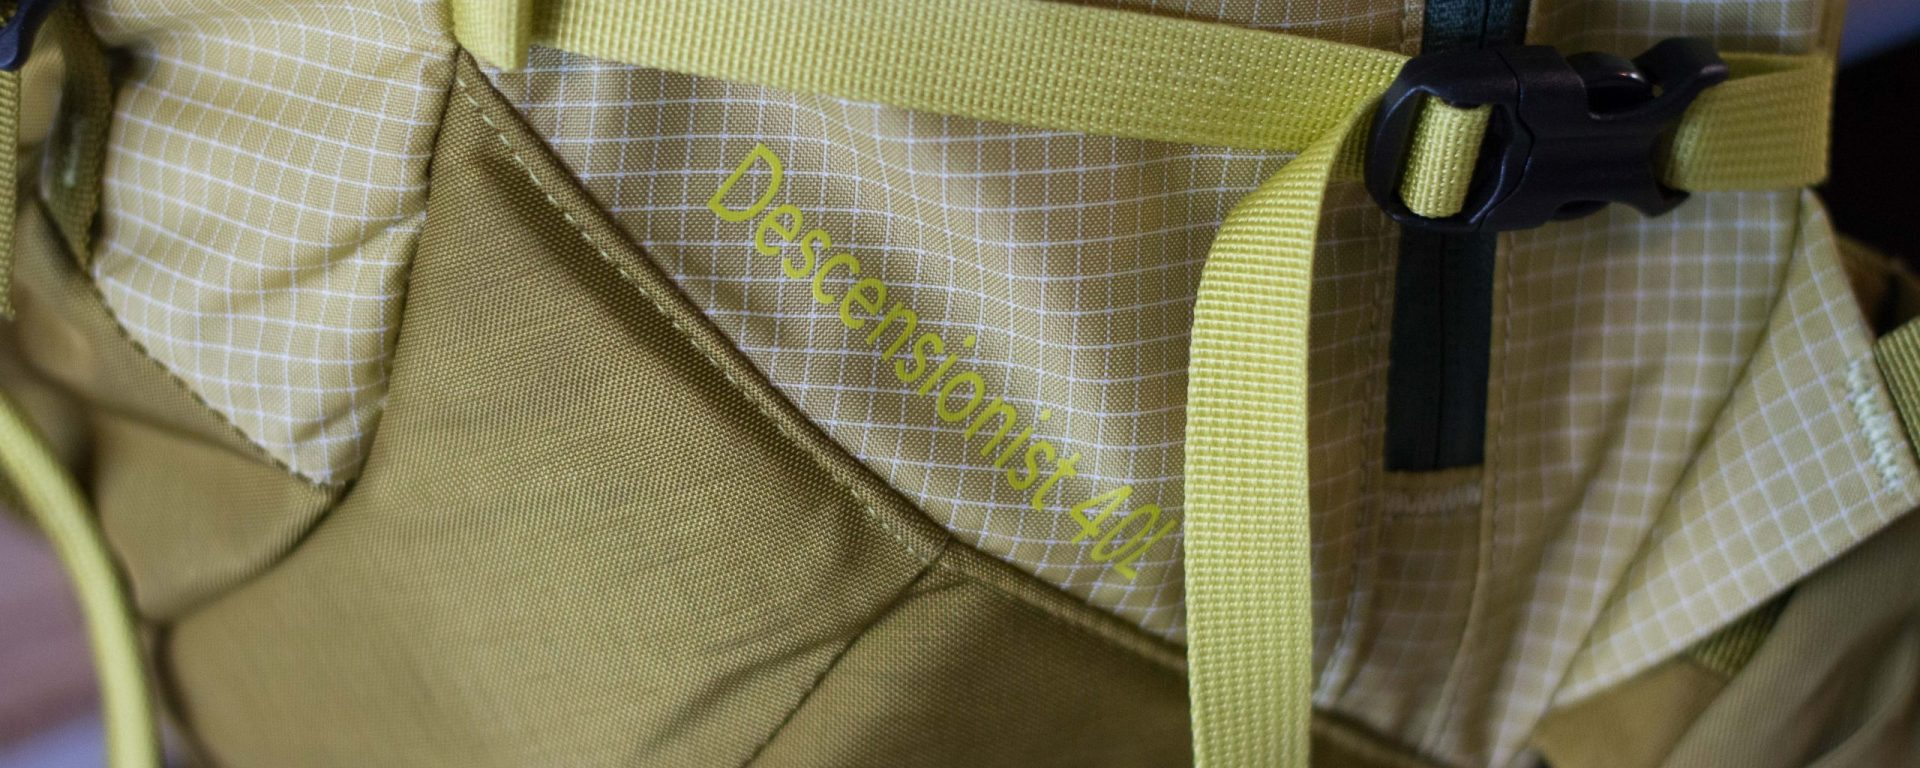 Patagonia Descensionist Pack